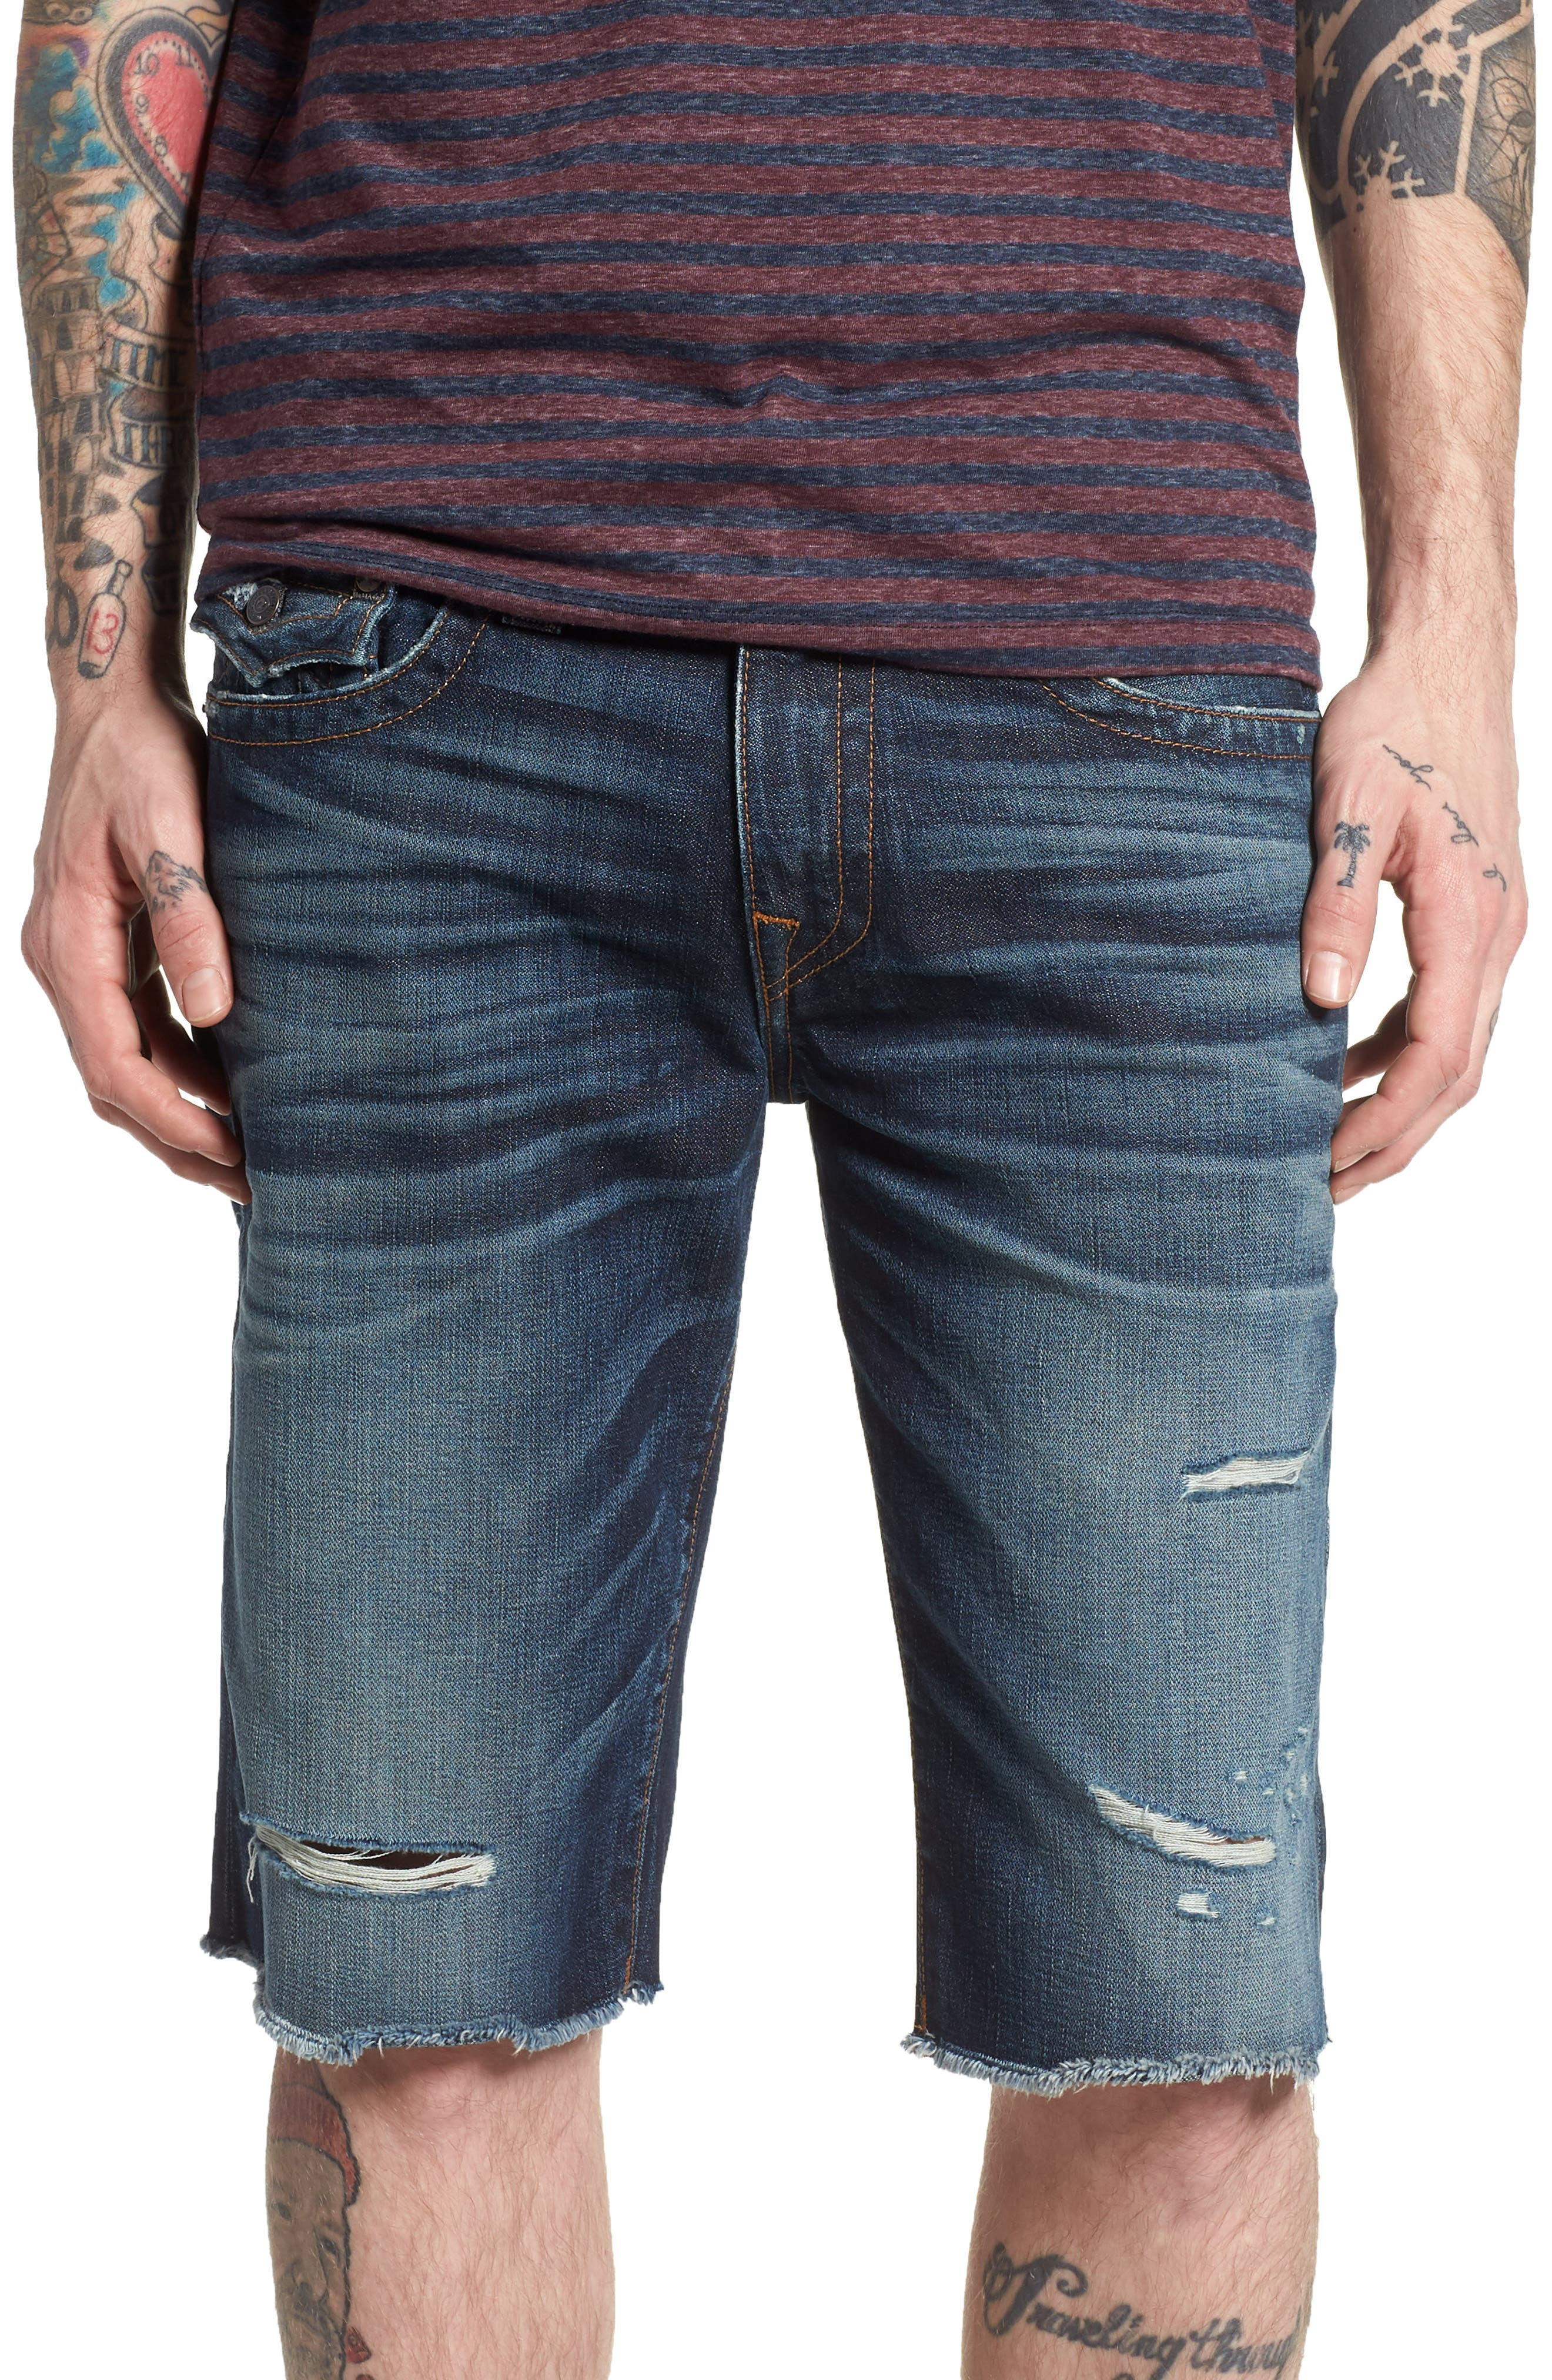 True Religion Brand Jeans Ricky Relaxed Fit Denim Shorts (Midnight Menace)